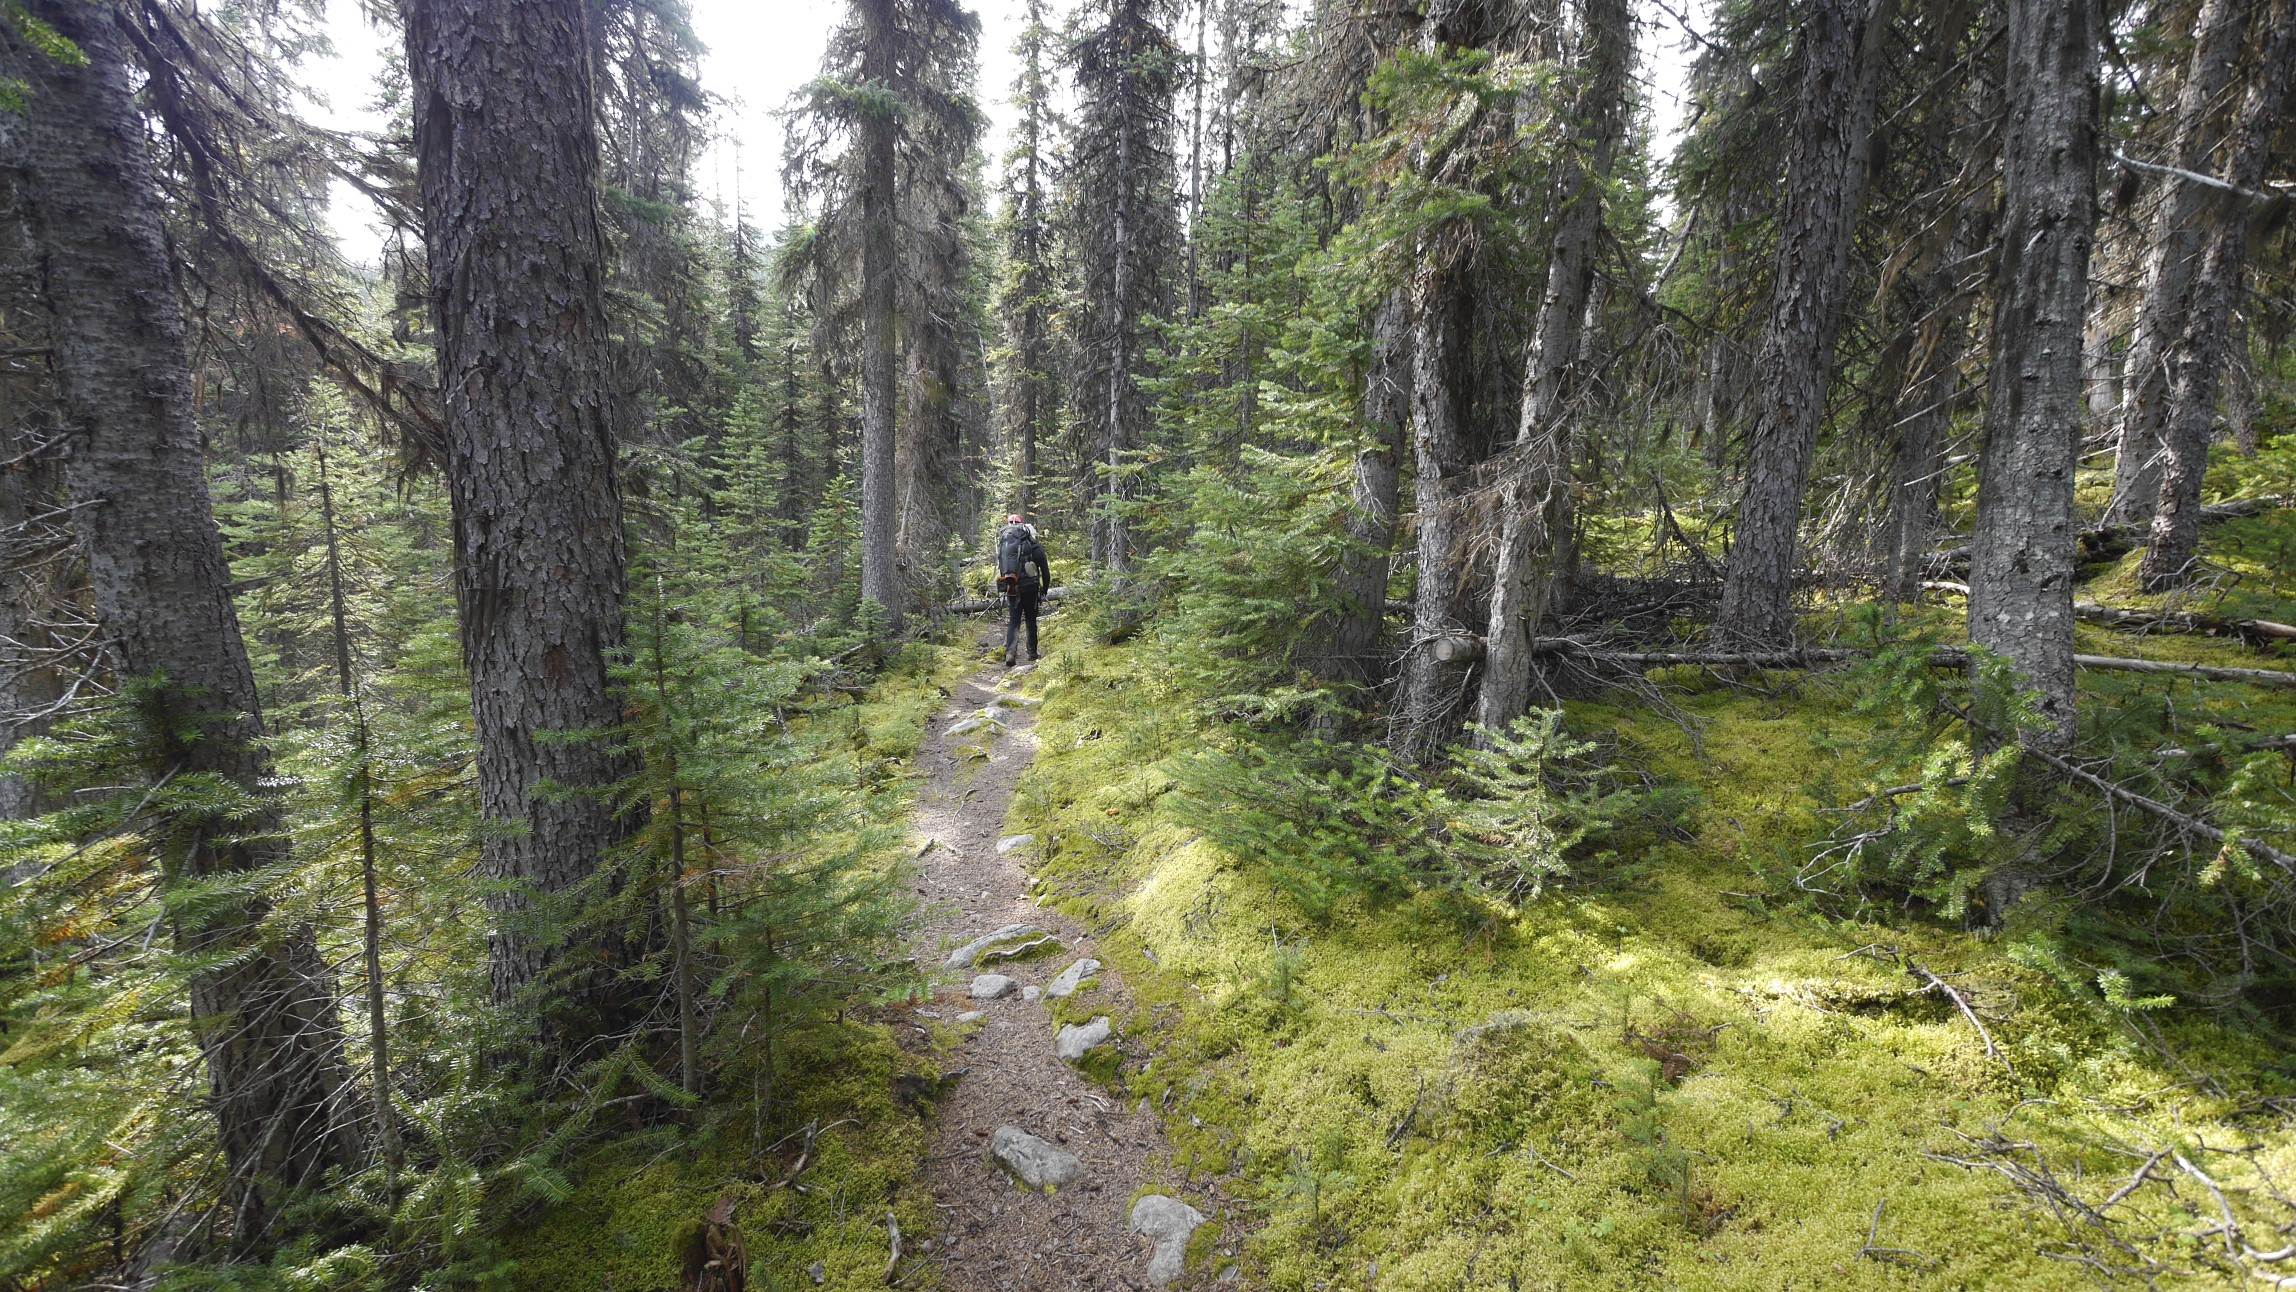 The trail in the Tonquin Valley